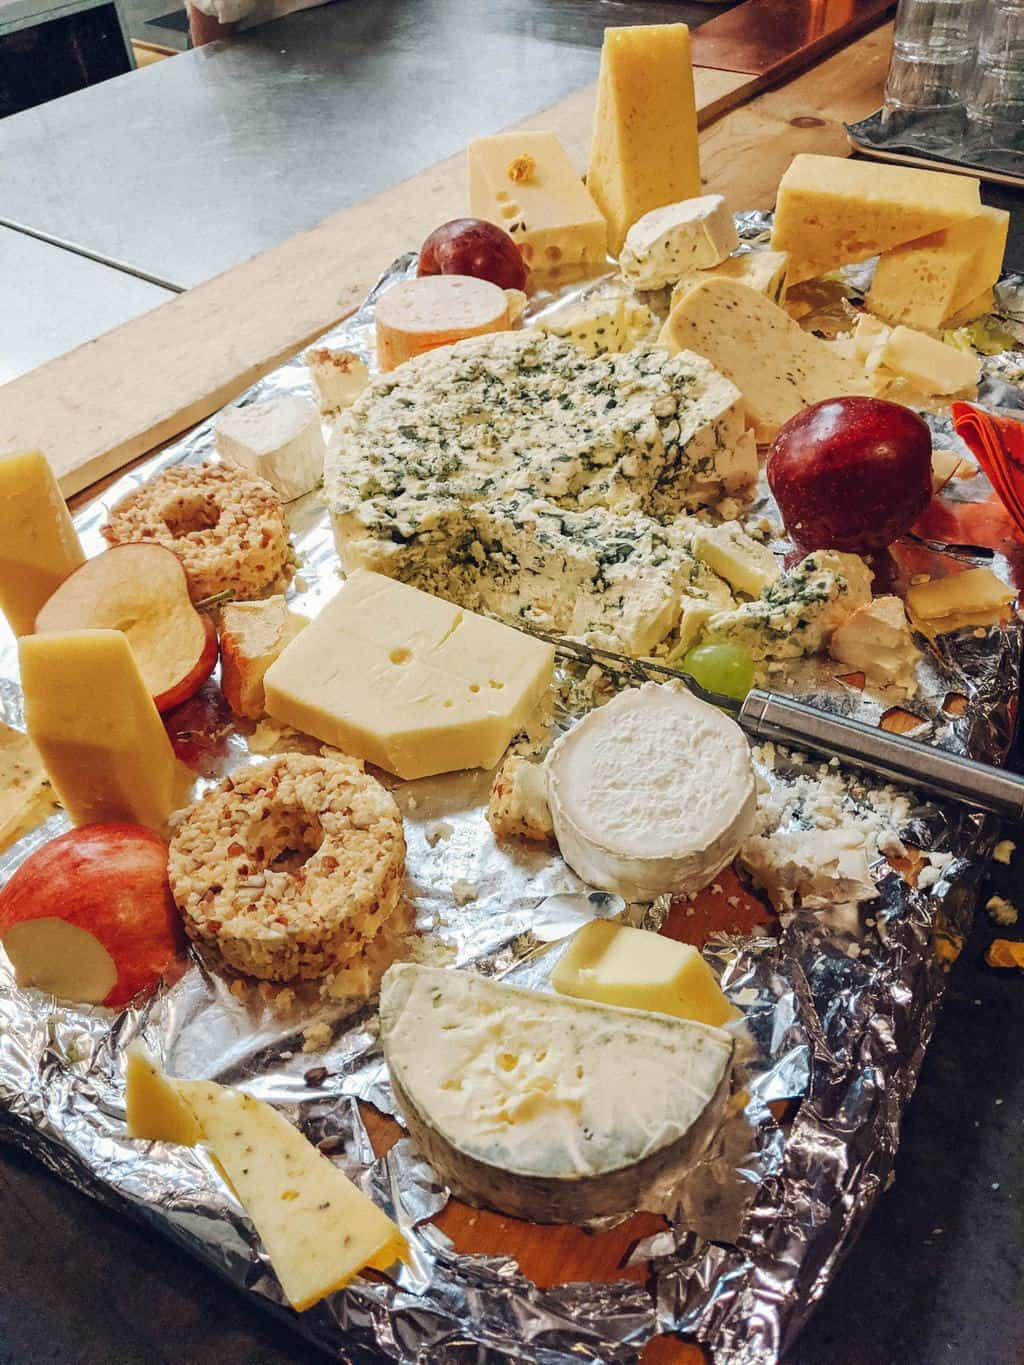 A large cheese platter Finnish Lapland, Lapland destinations, Lapland Finland, Inghams